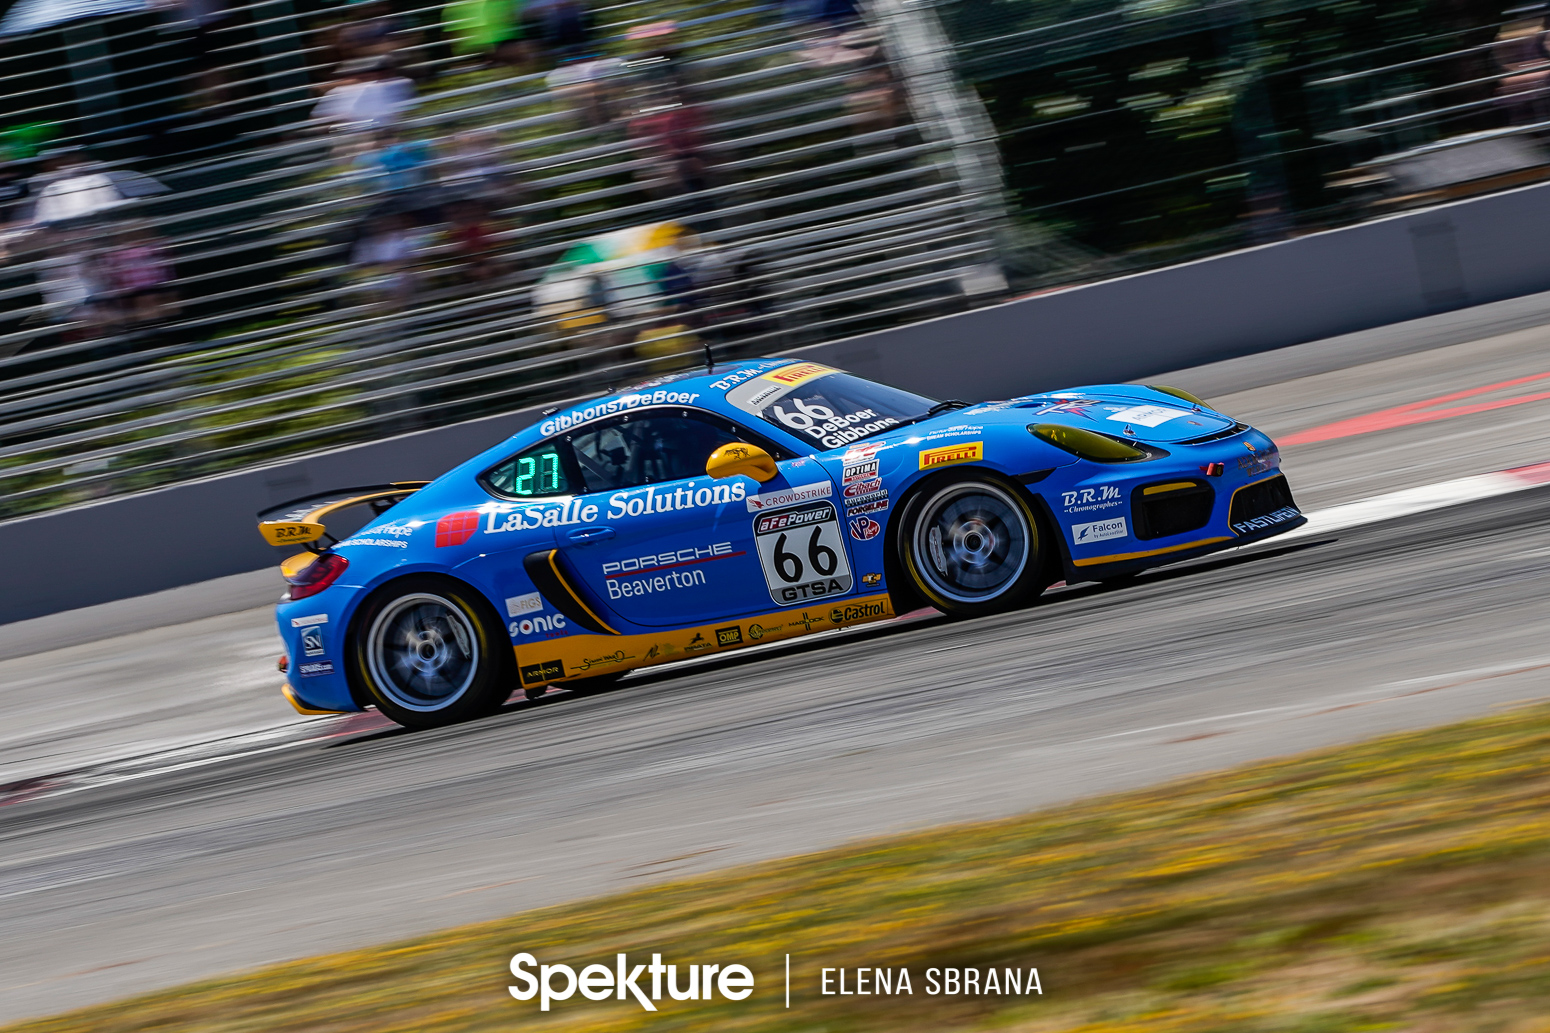 Earchphoto - The TRG Porsche No.66 during a race at PIR.